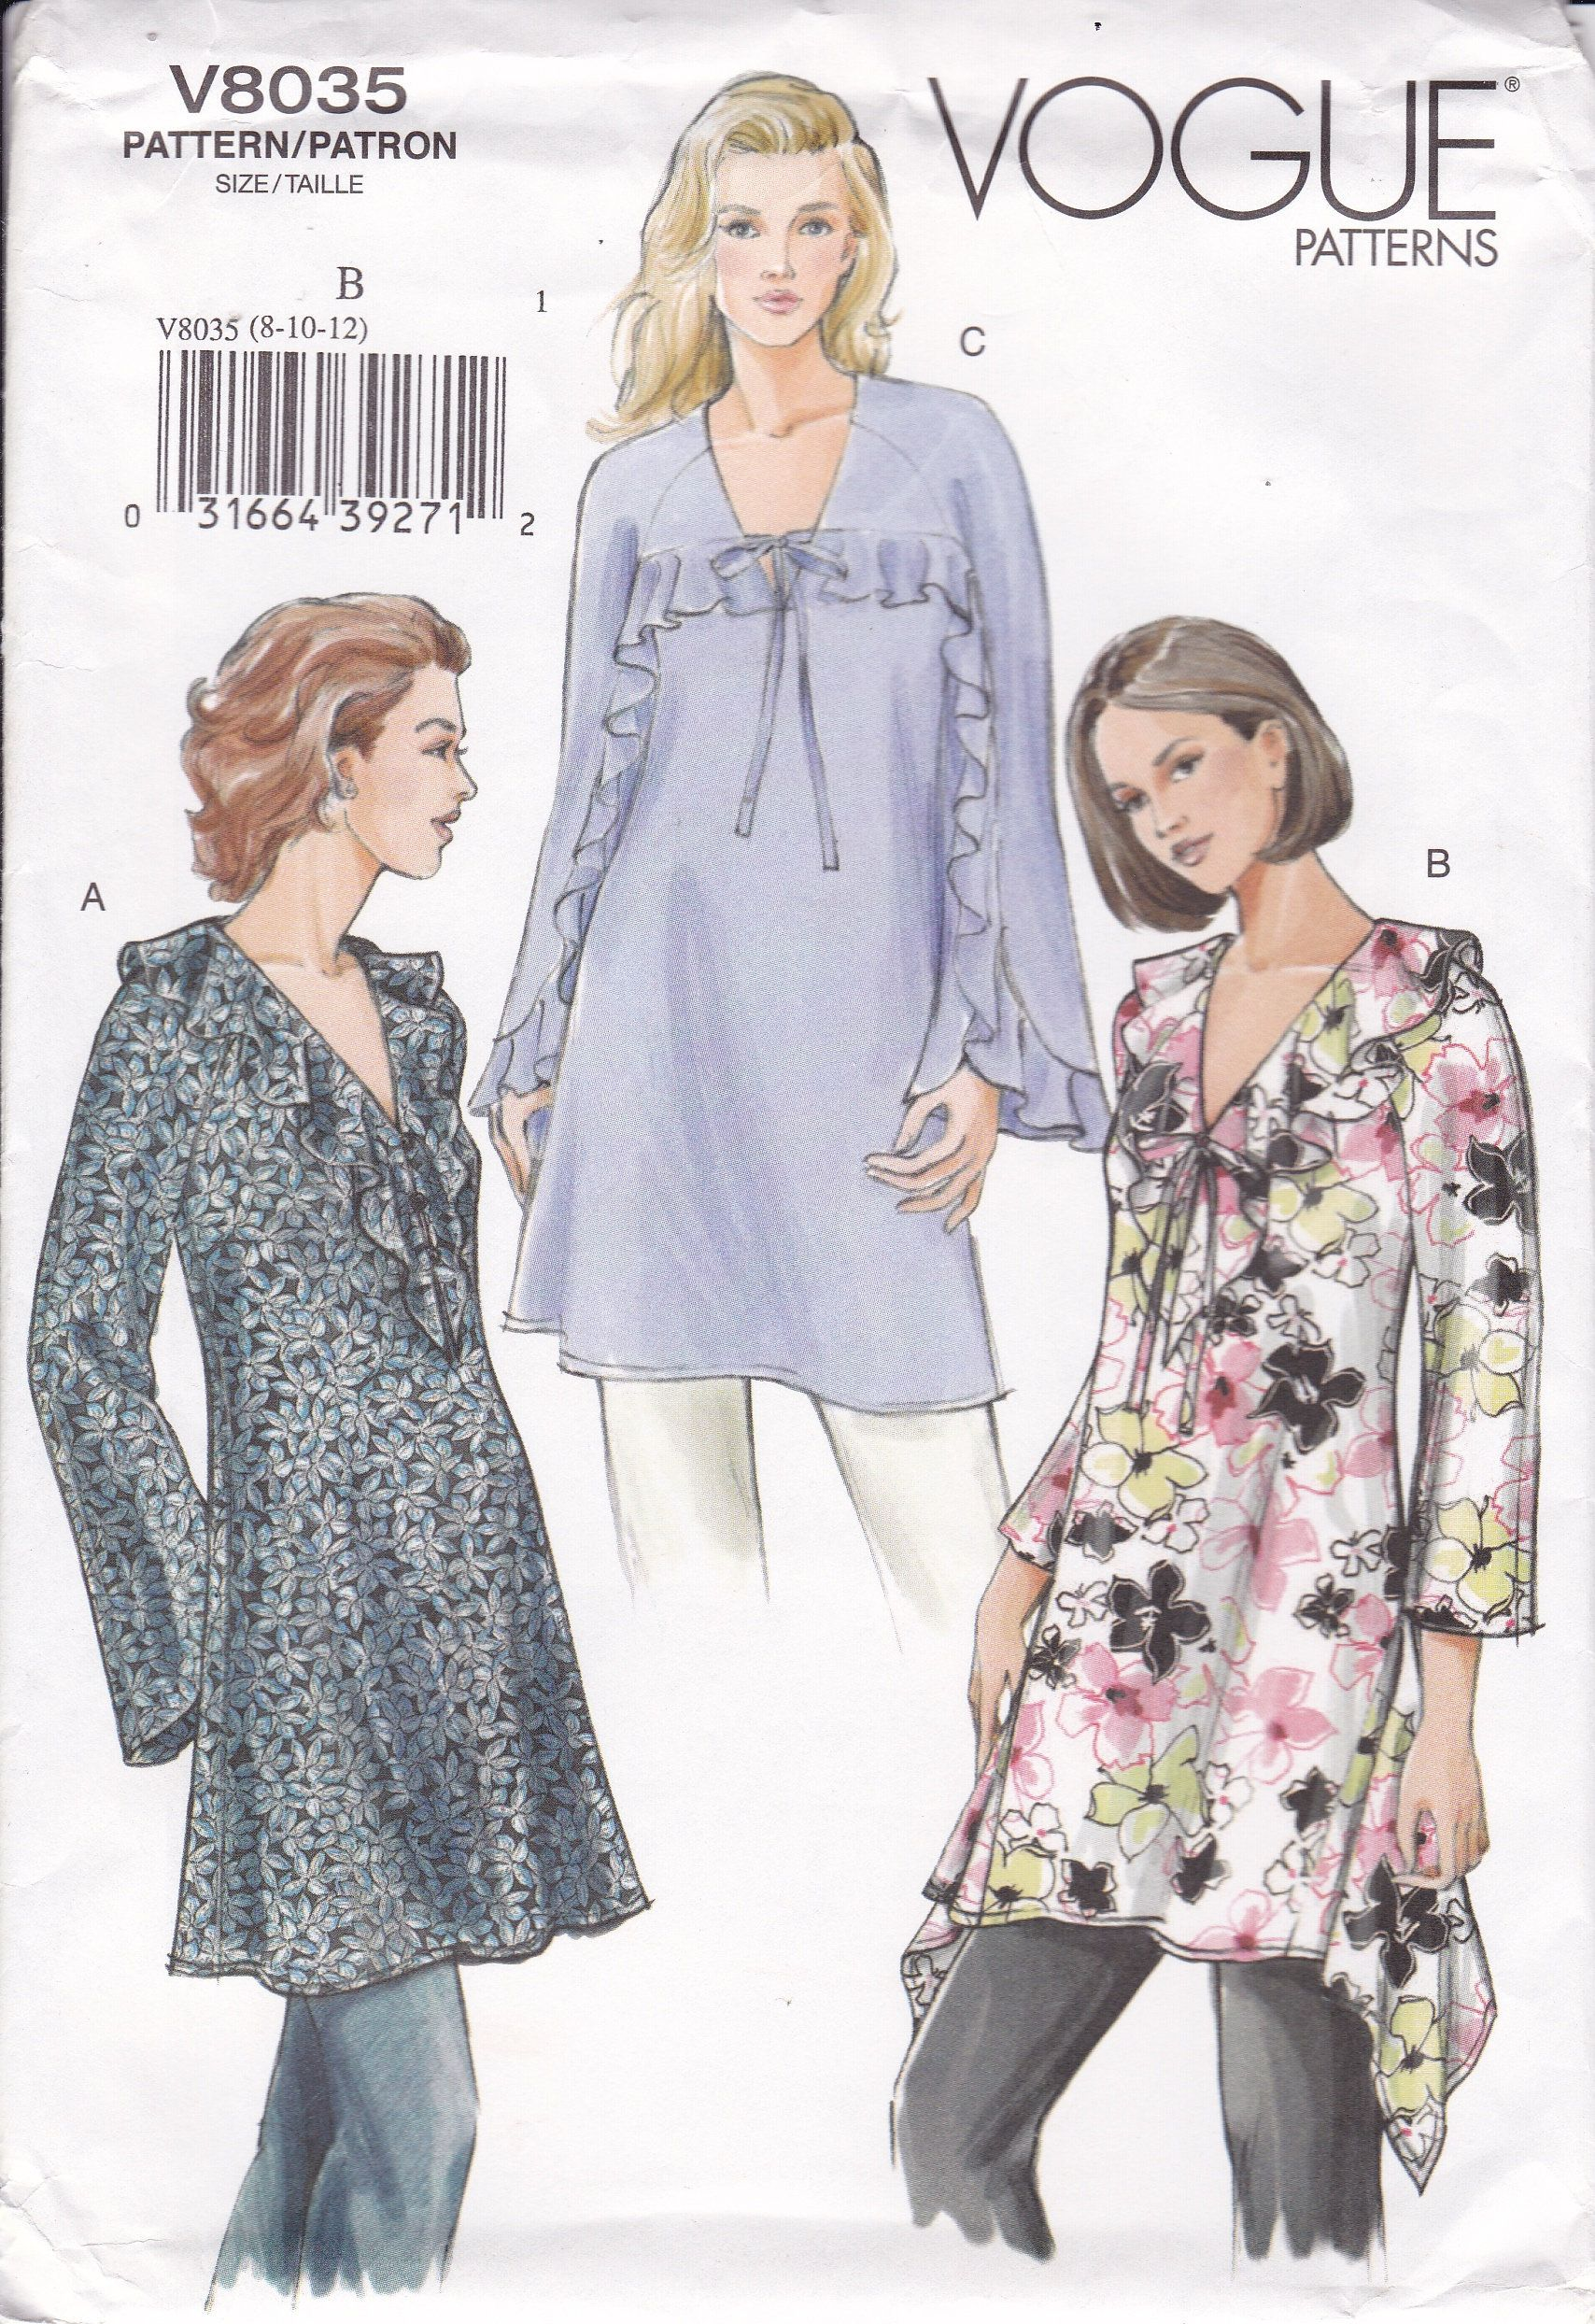 Vogue 8035 Sewing Pattern 2005 UNCUT Tunic Top Godet Flounce Out of Print Misses Size 8 10 12 Bust 31.5 32.5 34 Uncut Women's Sewing Pattern #tunicdesigns